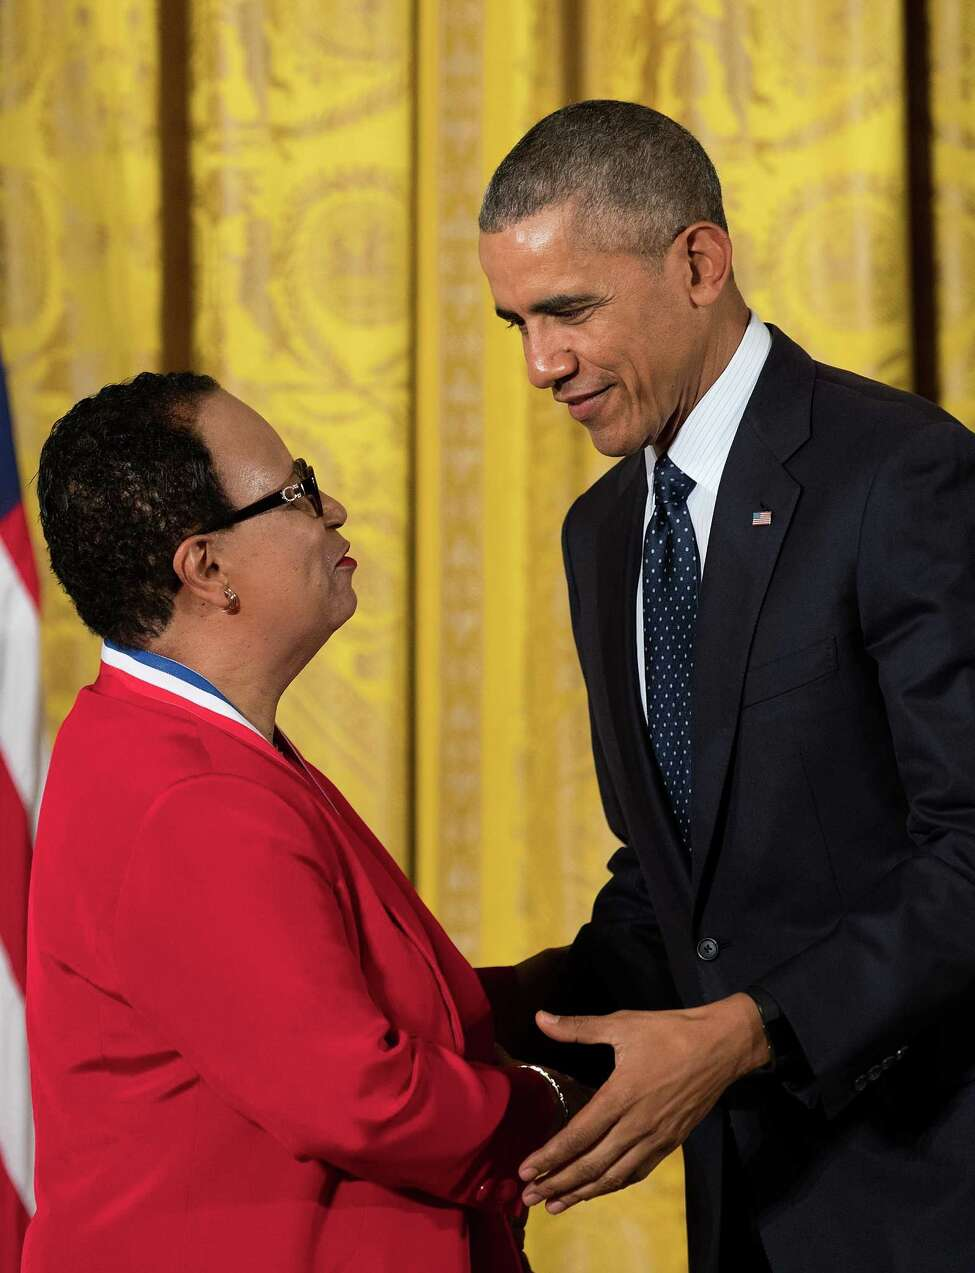 WASHINGTON, DC - MAY 19: (L-R) Dr. Shirley Ann Jackson, Rensselaer Polytechnic Institute, shakes hands with President Barack Obama after receiving the National Medal of Science, during a ceremony in the East Room of the White House, May 19, 2016, in Washington, DC. Established in 1959, the National Medal of Science recognizes individuals who have made outstanding contributions to science and engineering. The National Medal of Technology and Innovation, created in 1980, recognizes those who have made contributions to America's competitiveness, quality of life, and helped strengthen the country's technological workforce. (Photo by Drew Angerer/Getty Images) ORG XMIT: 640204835